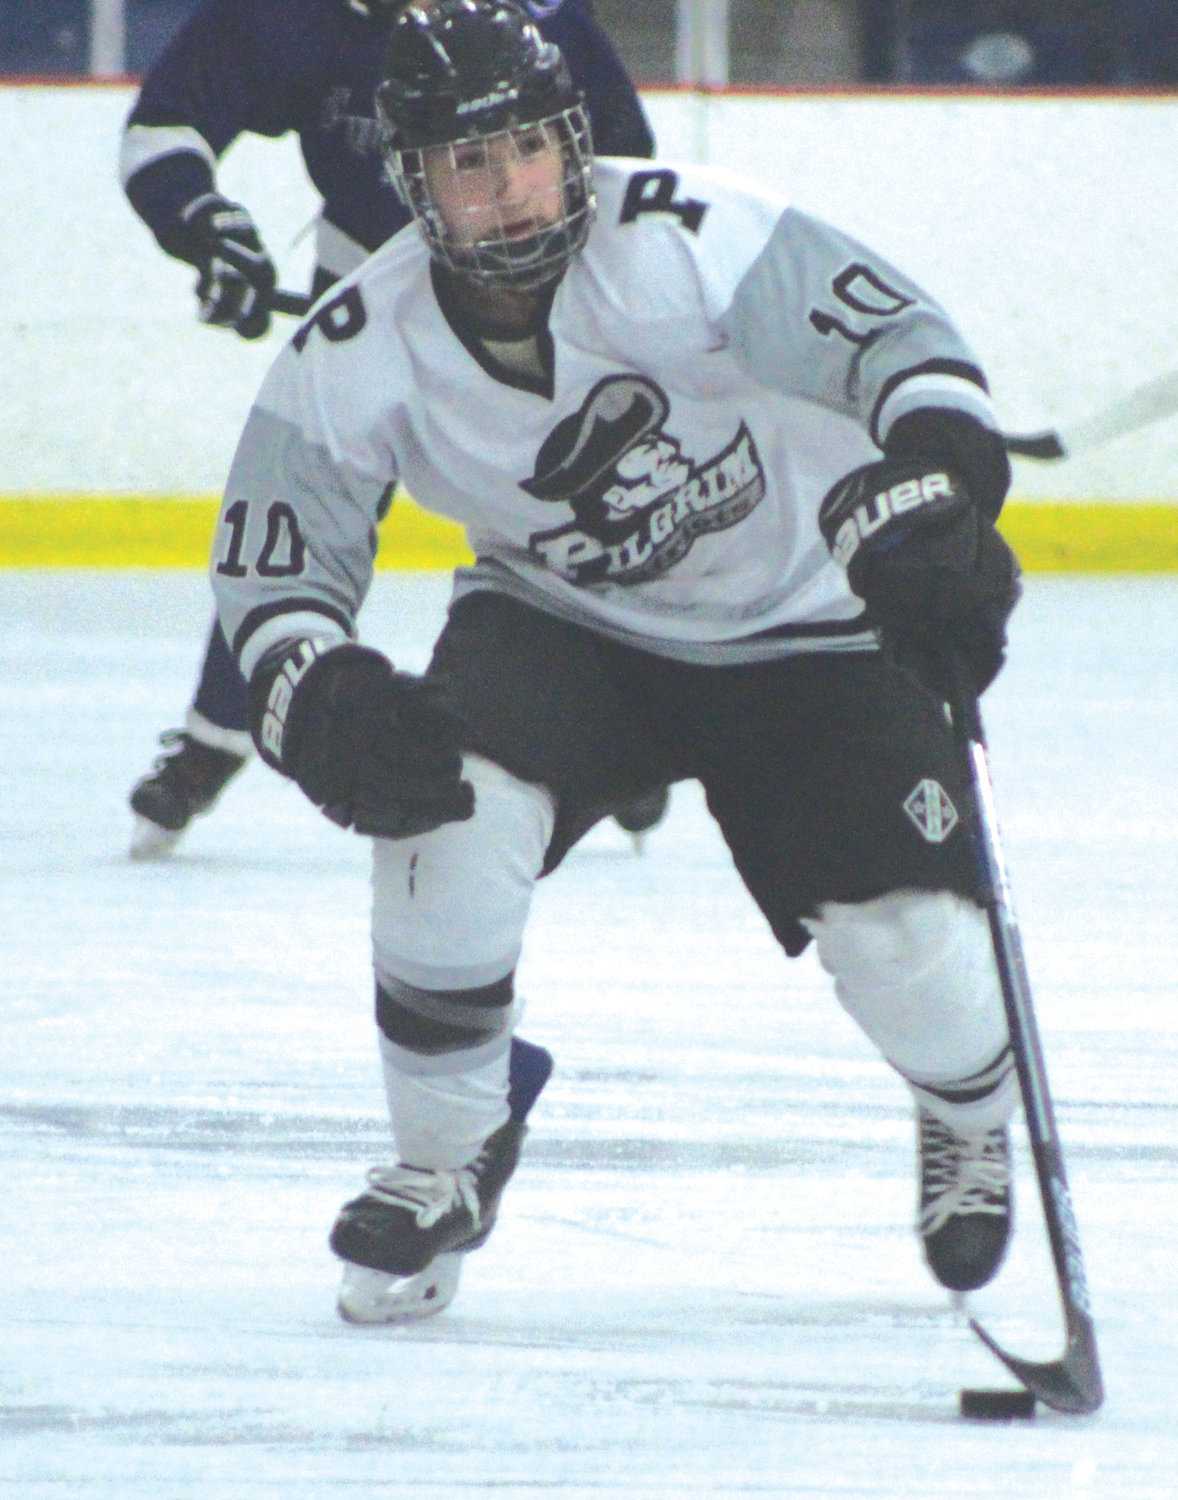 UP THE ICE: Pilgrim's James Cook.